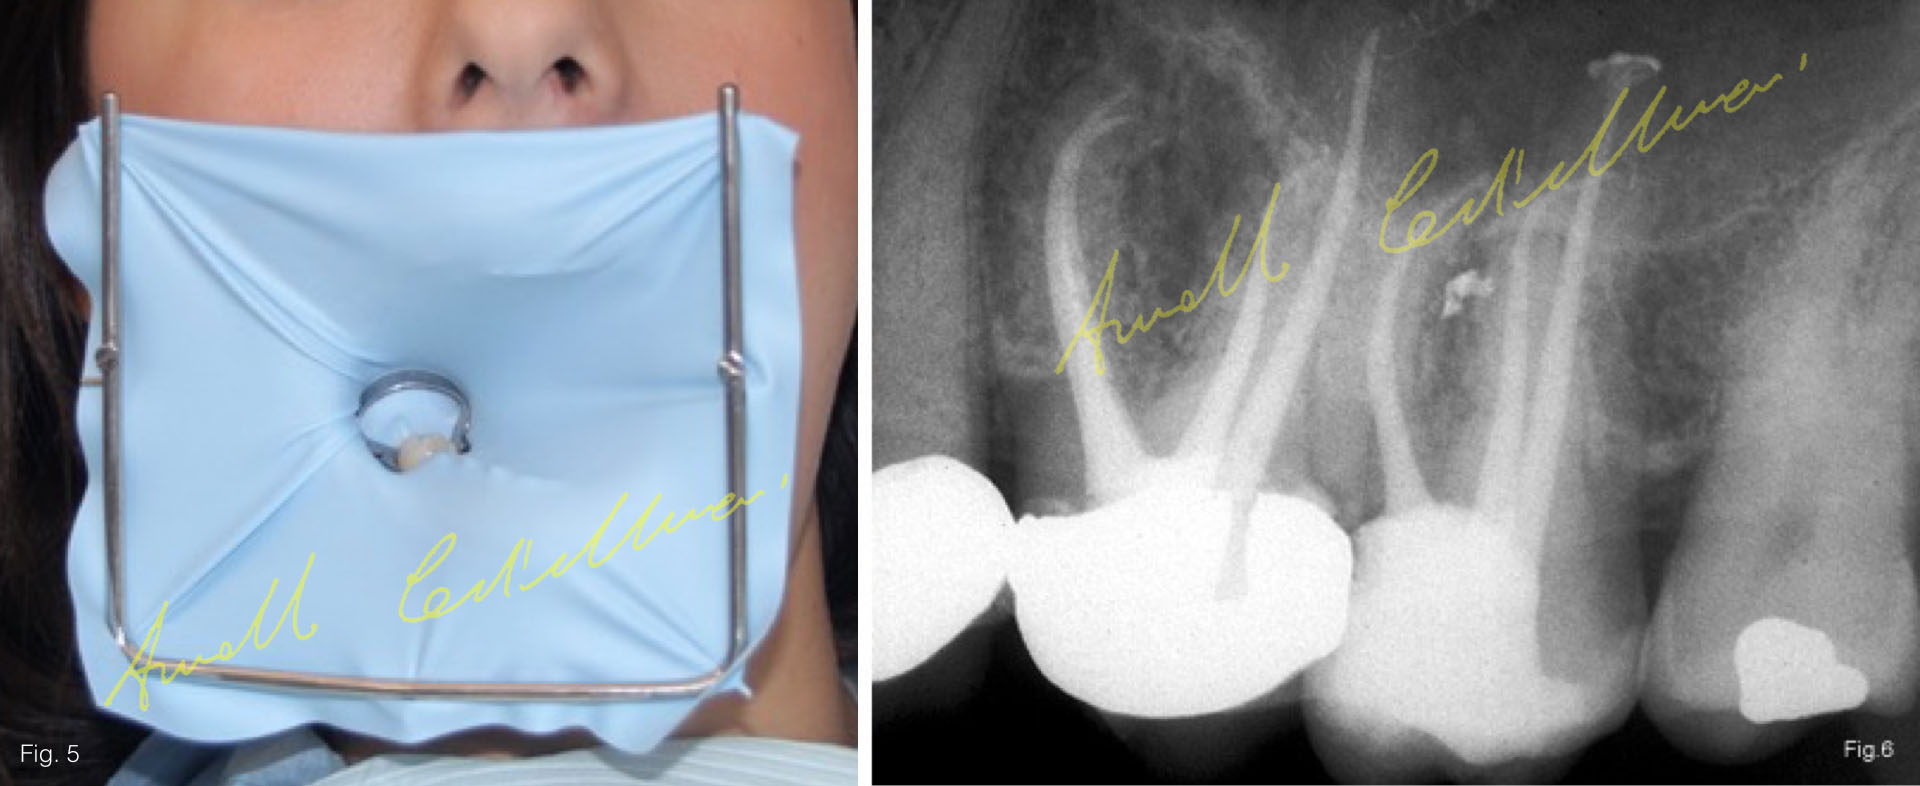 an endodontic treatment may be quite lengthy especially for molars because depending on the case it might require one or more appointments